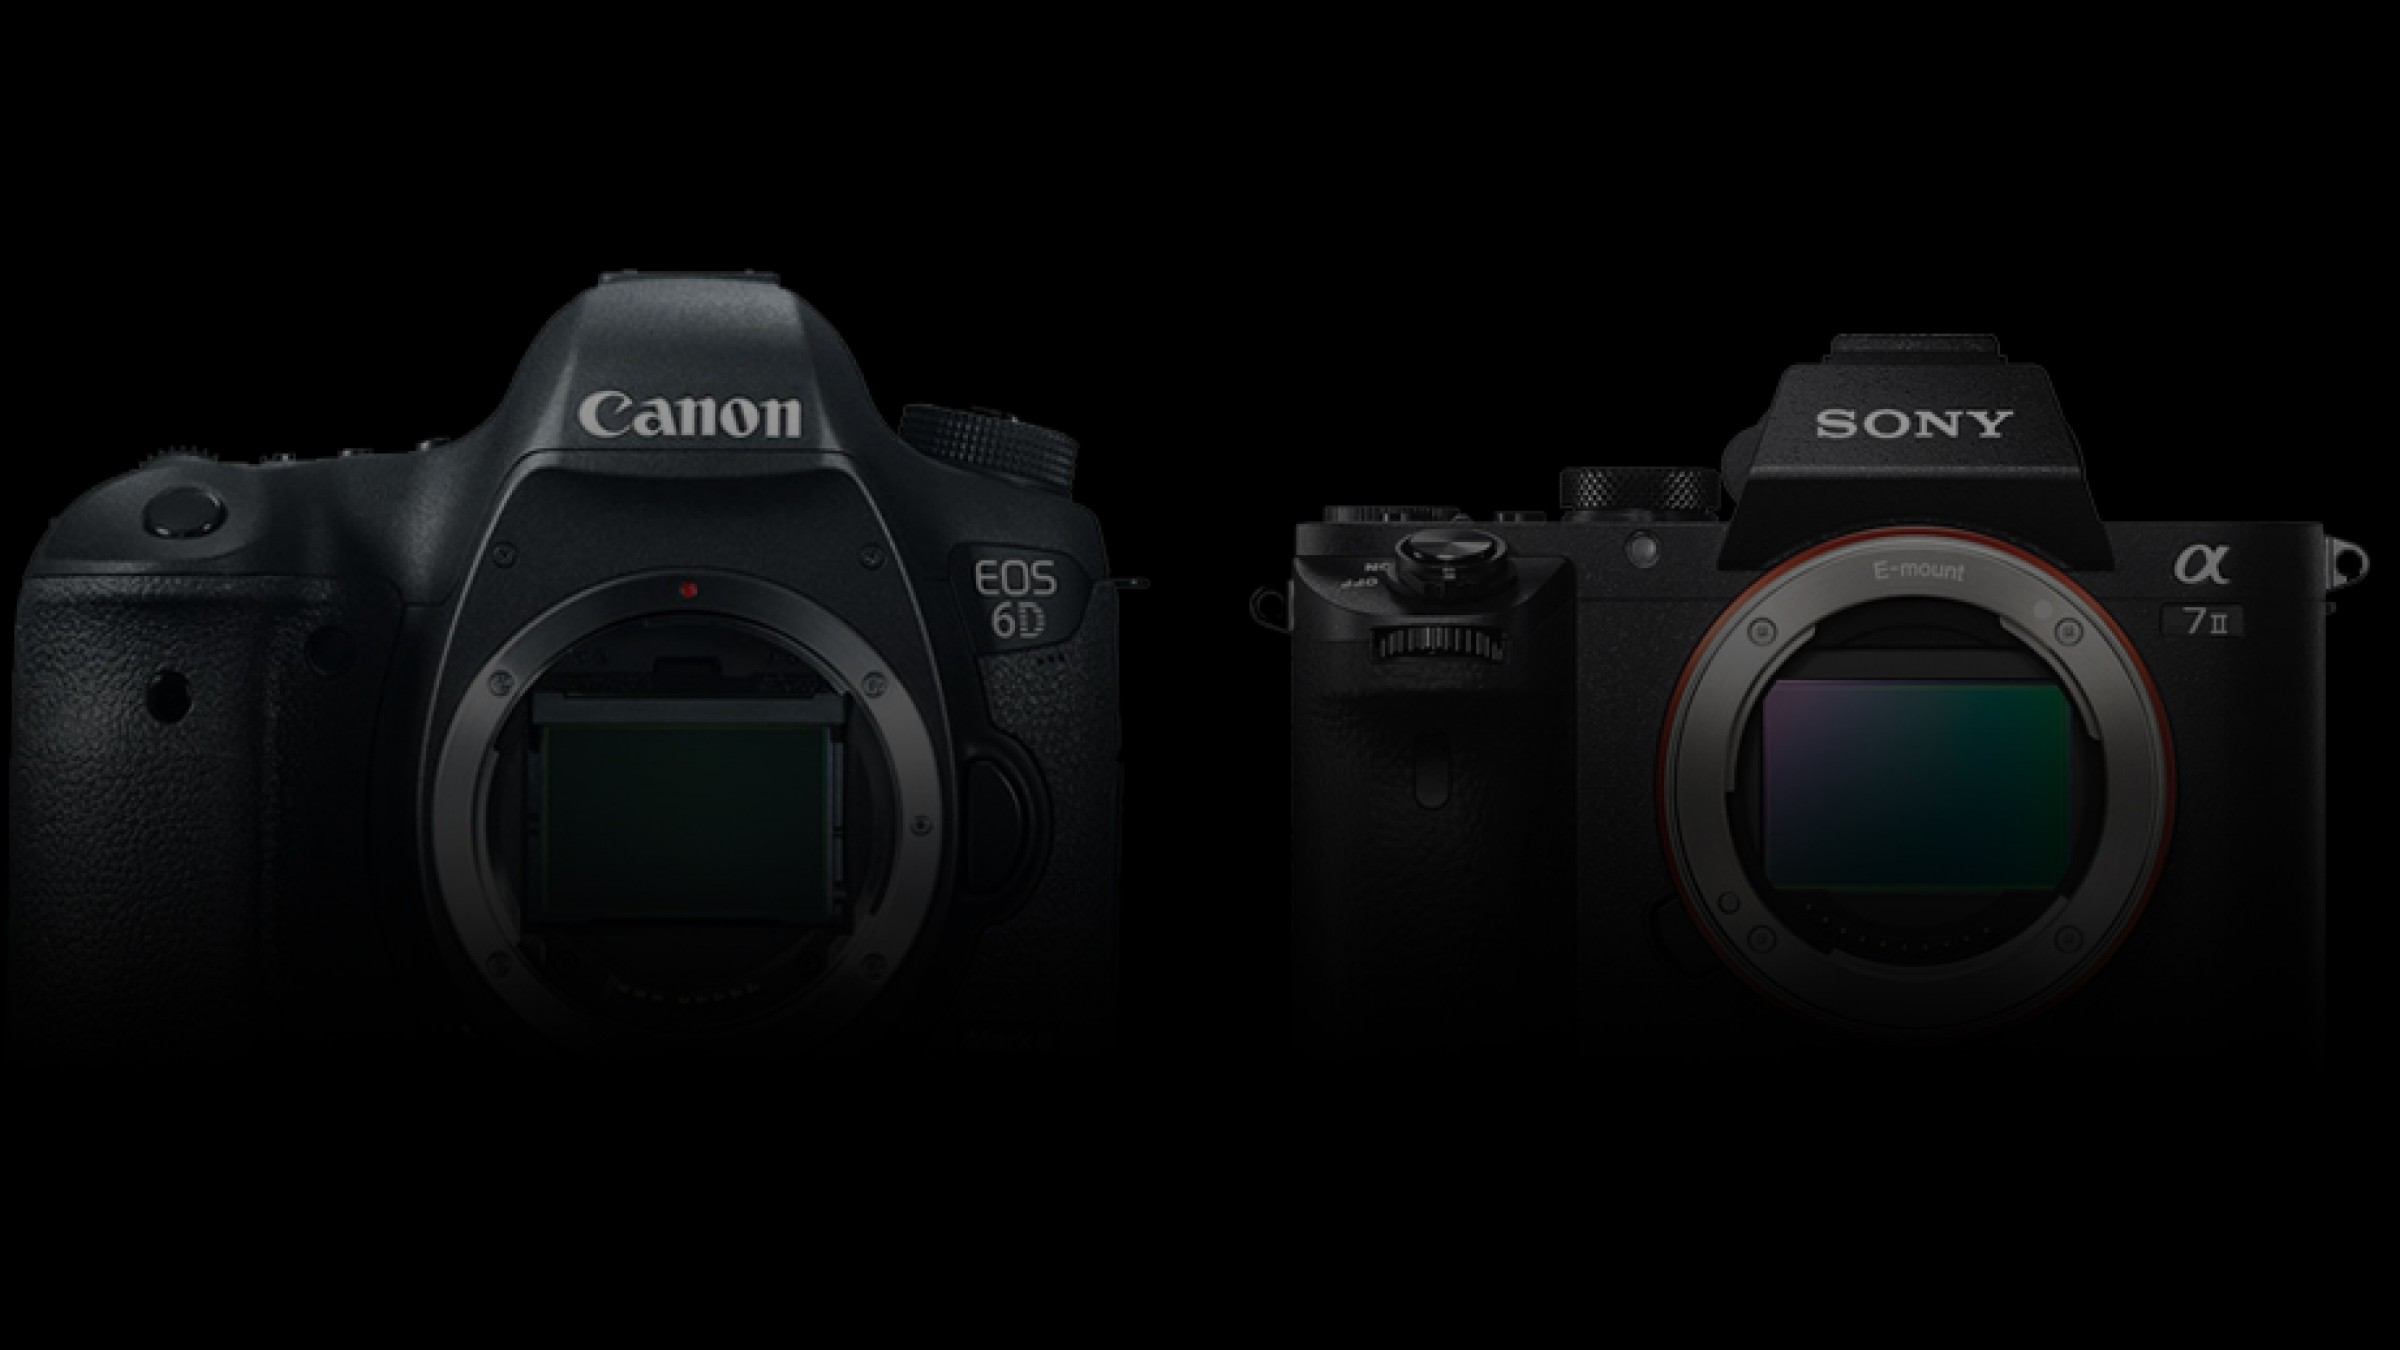 Canon EOS 6D Mark II and Sony a7III: Here's Everything We Know